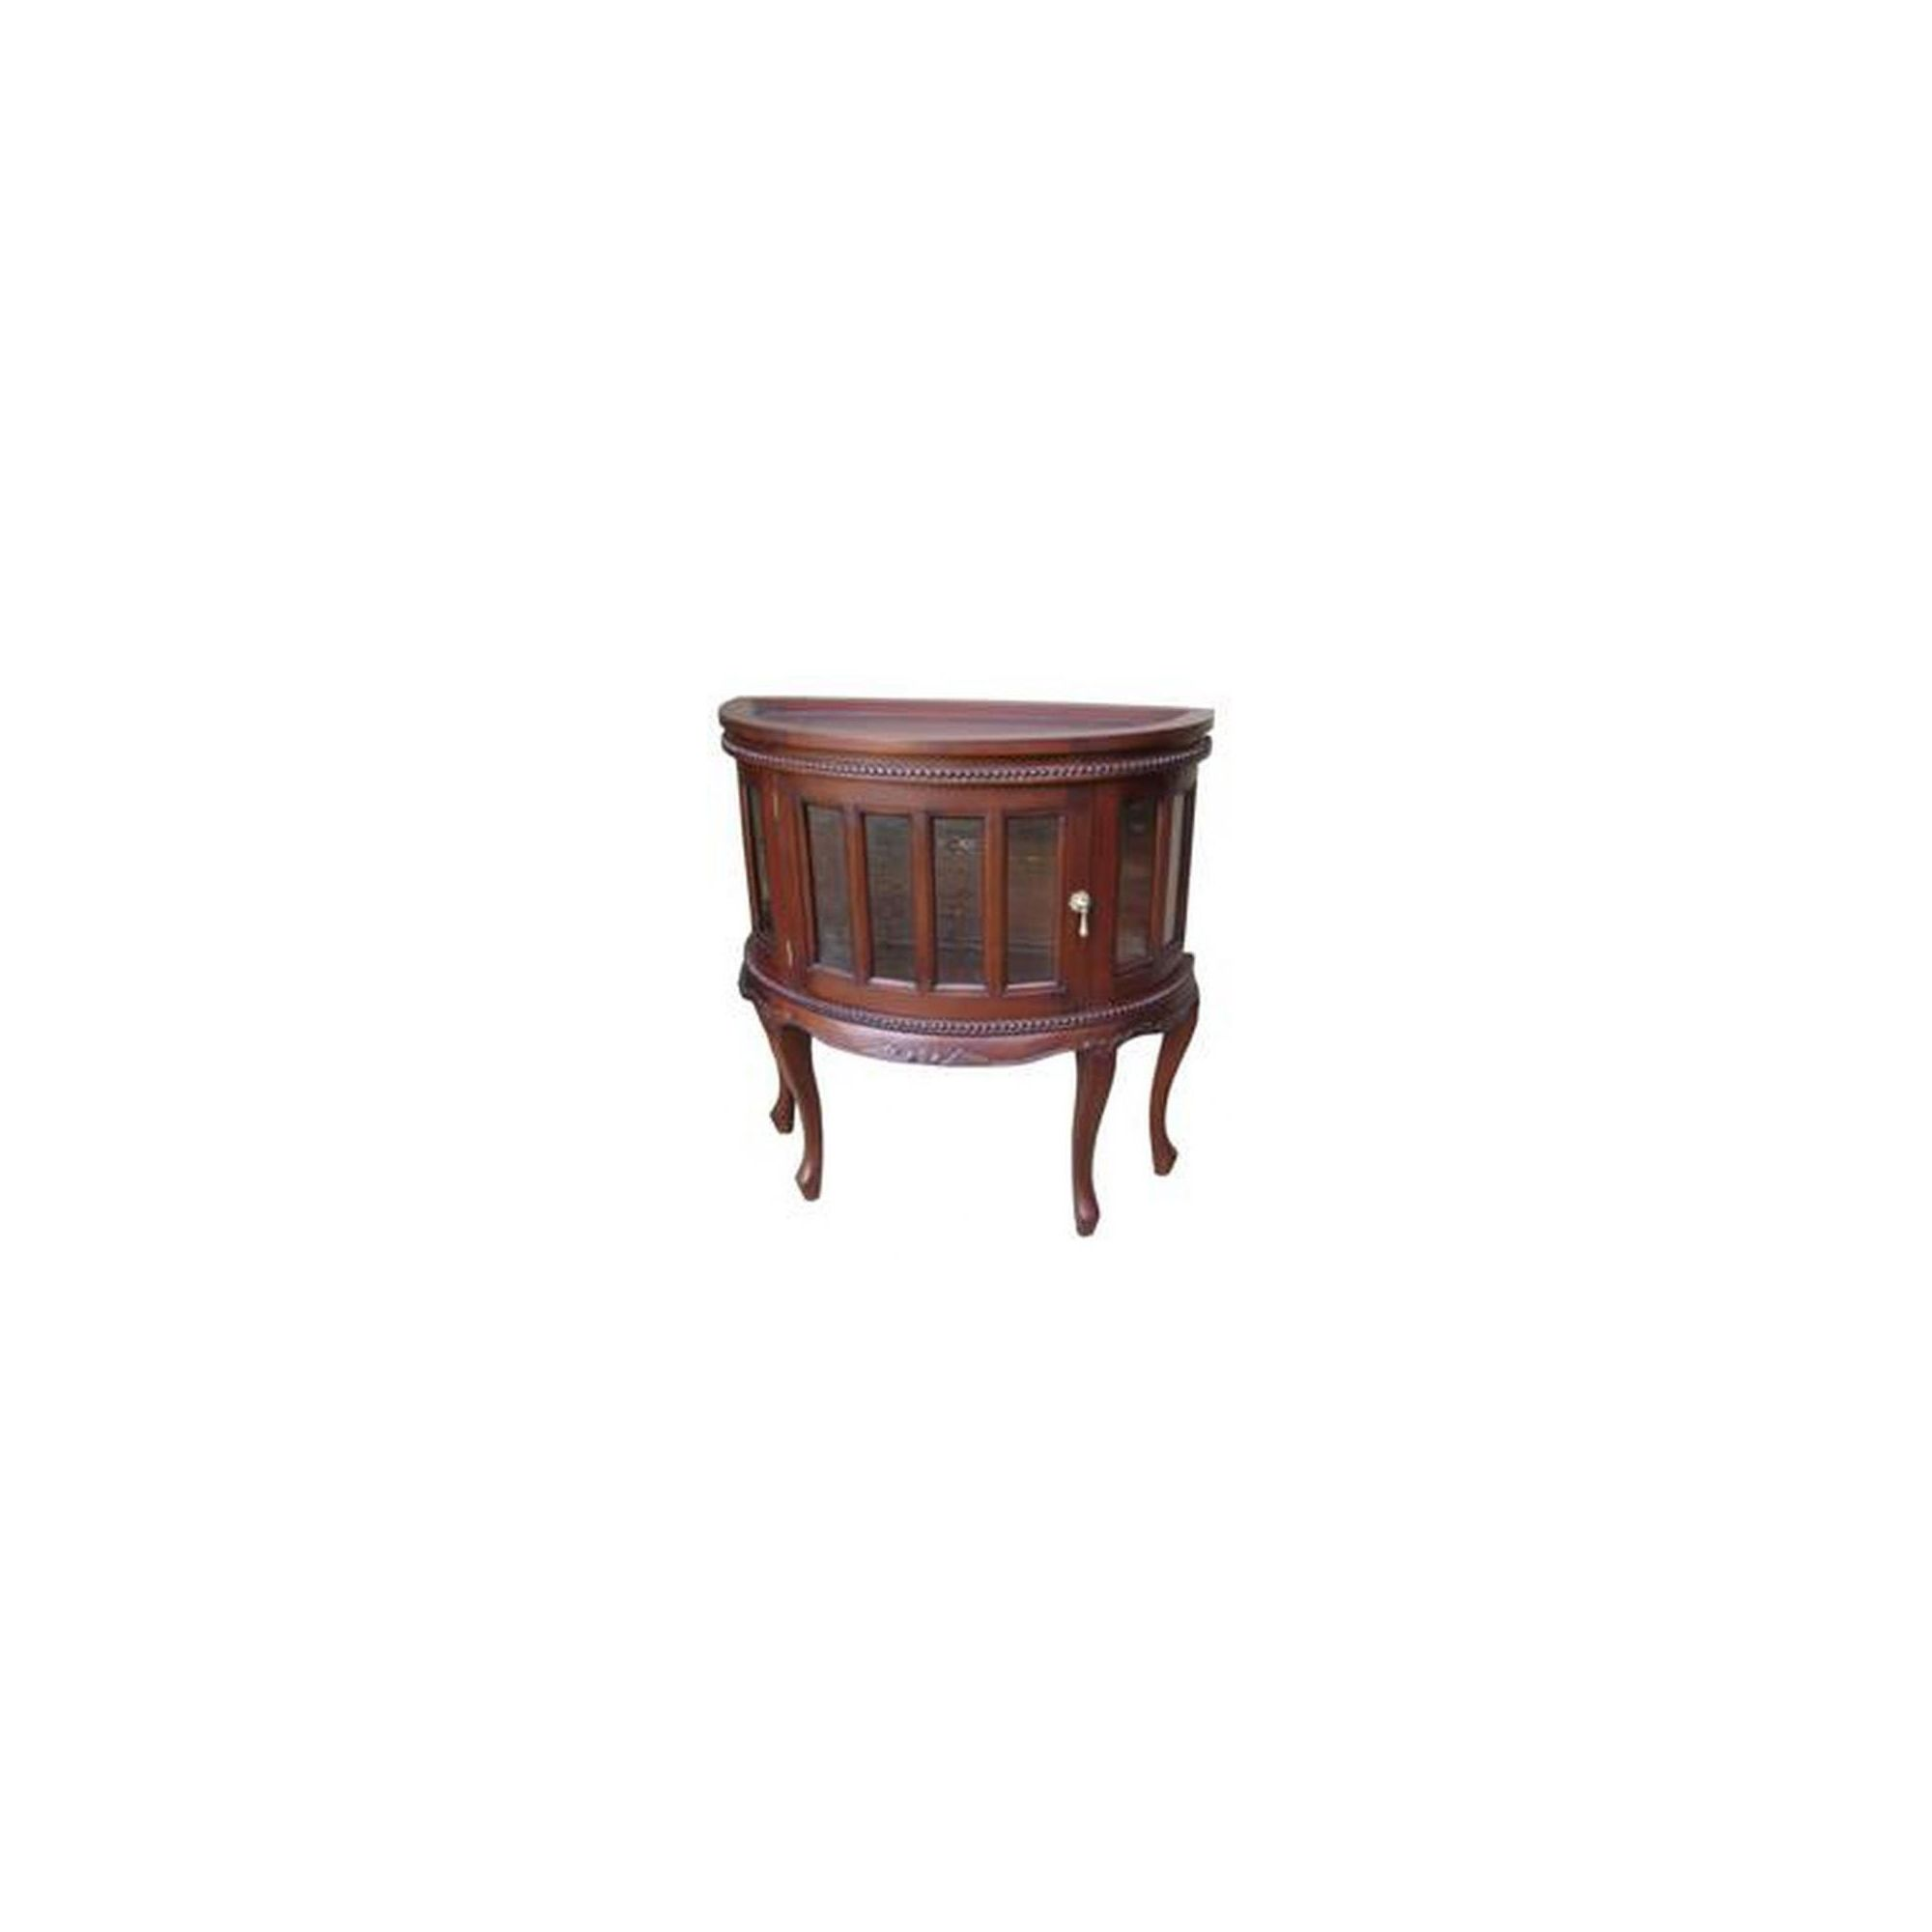 Lock stock and barrel Mahogany Demi Lune Tea Table in Mahogany at Tesco Direct